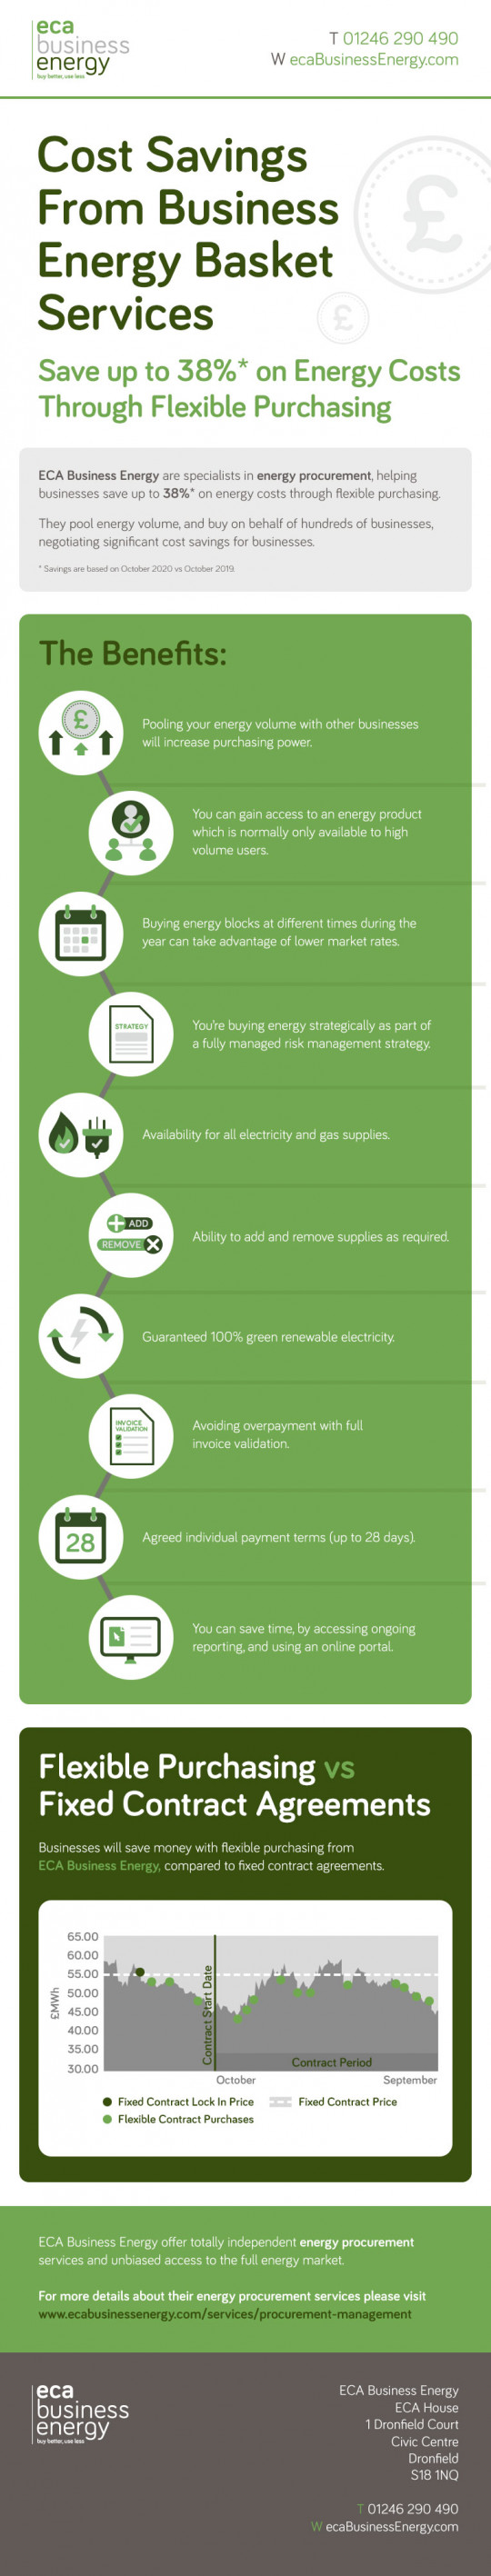 Cost Savings From Business Energy Basket Services